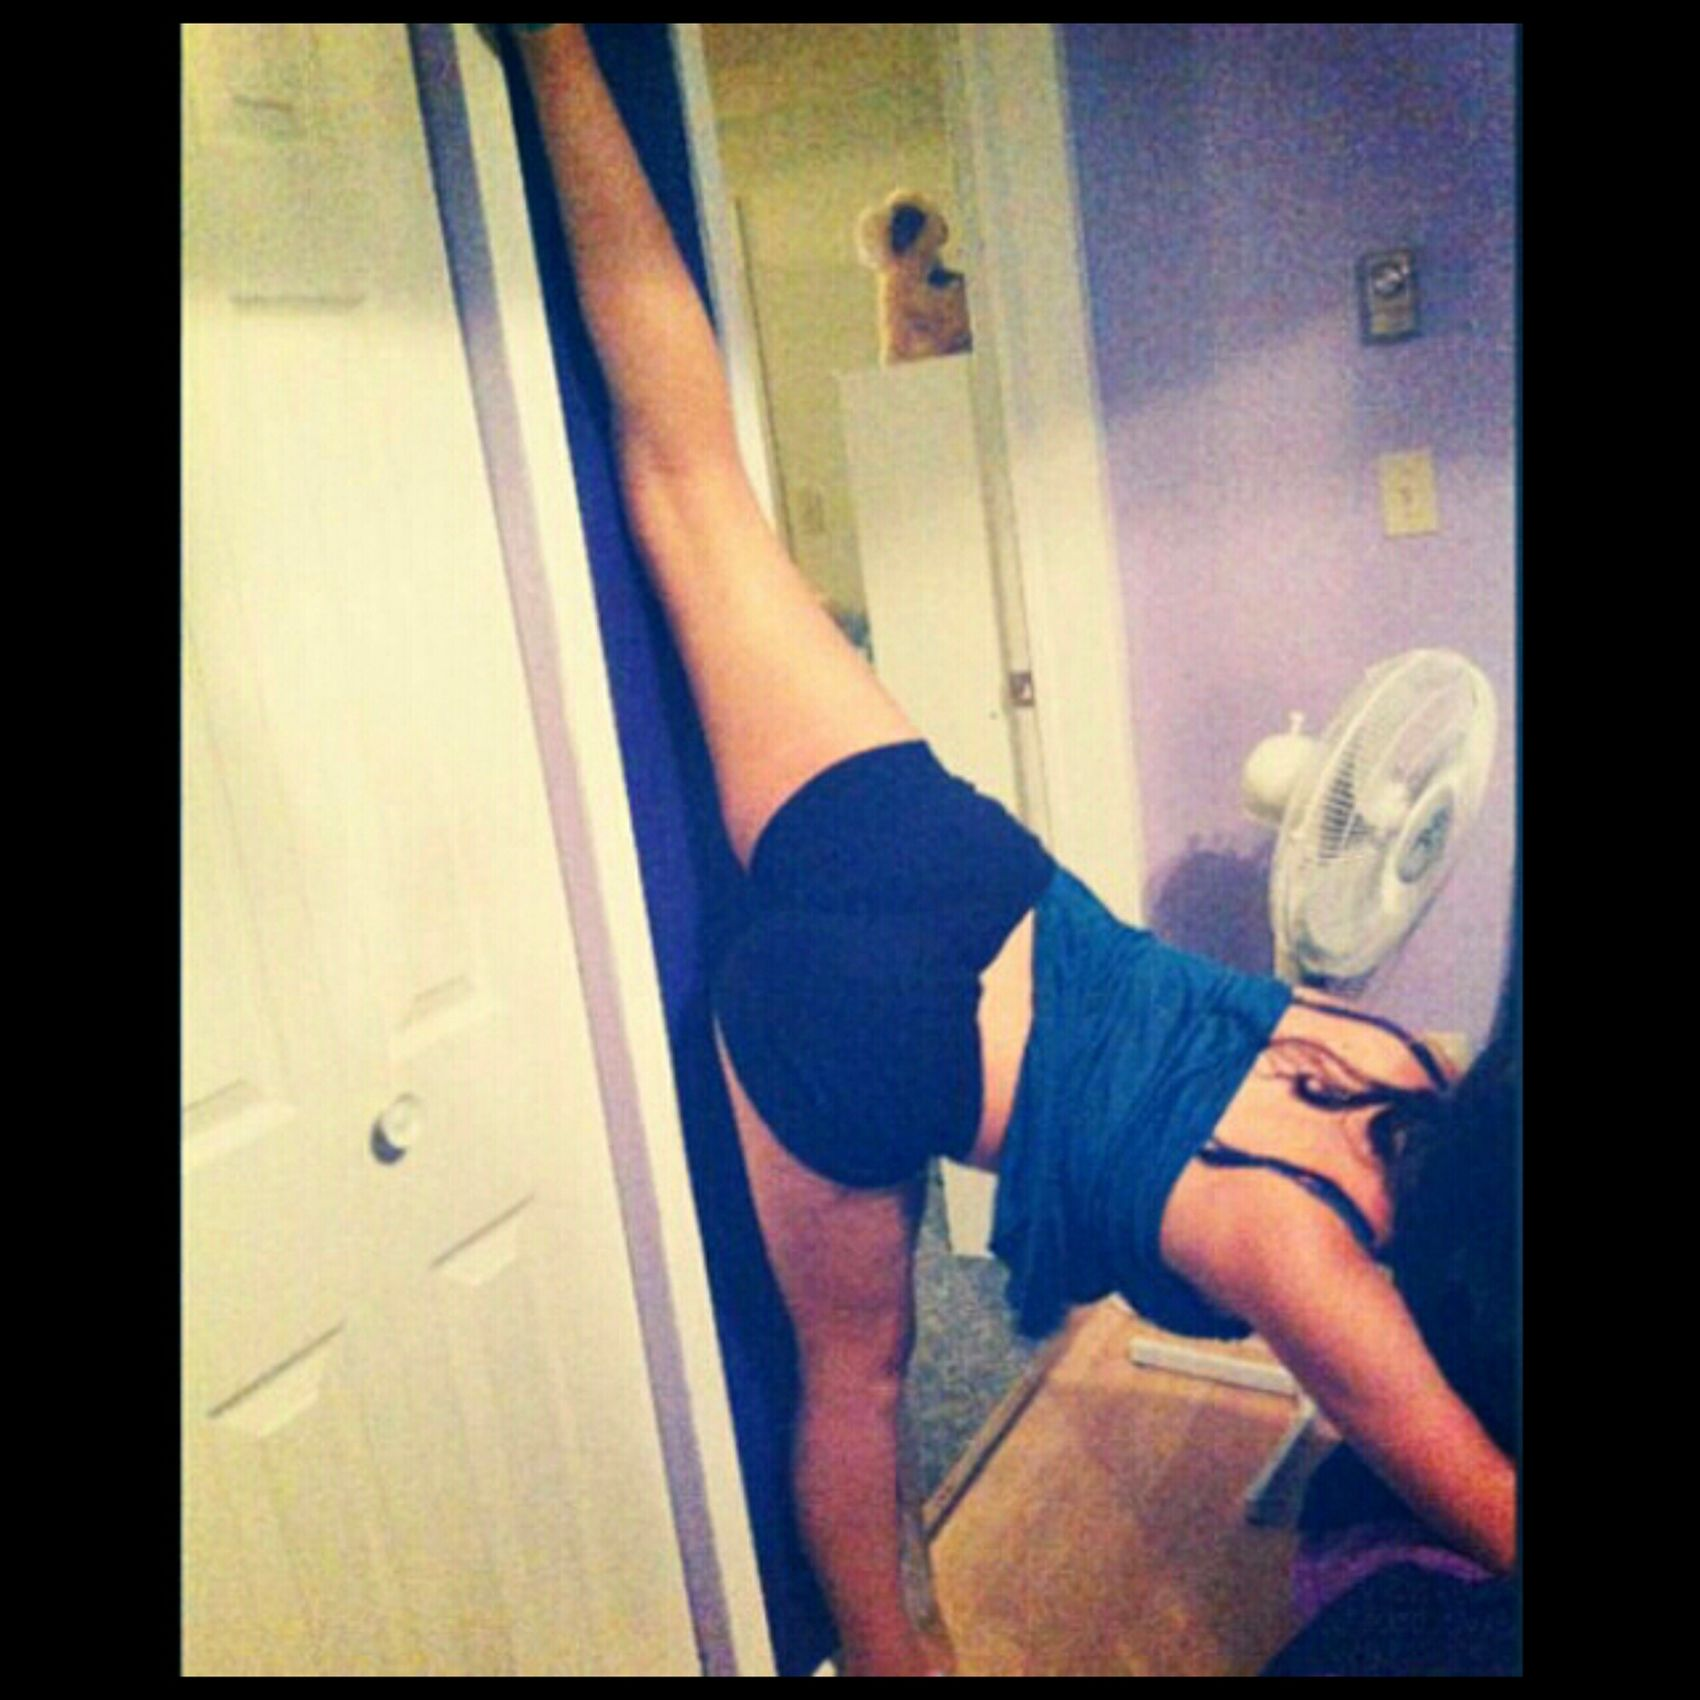 First time trying a Wall Split! ^.^... all I gotta say is I still go itt.♥...Back At It, More Flexibility ✌